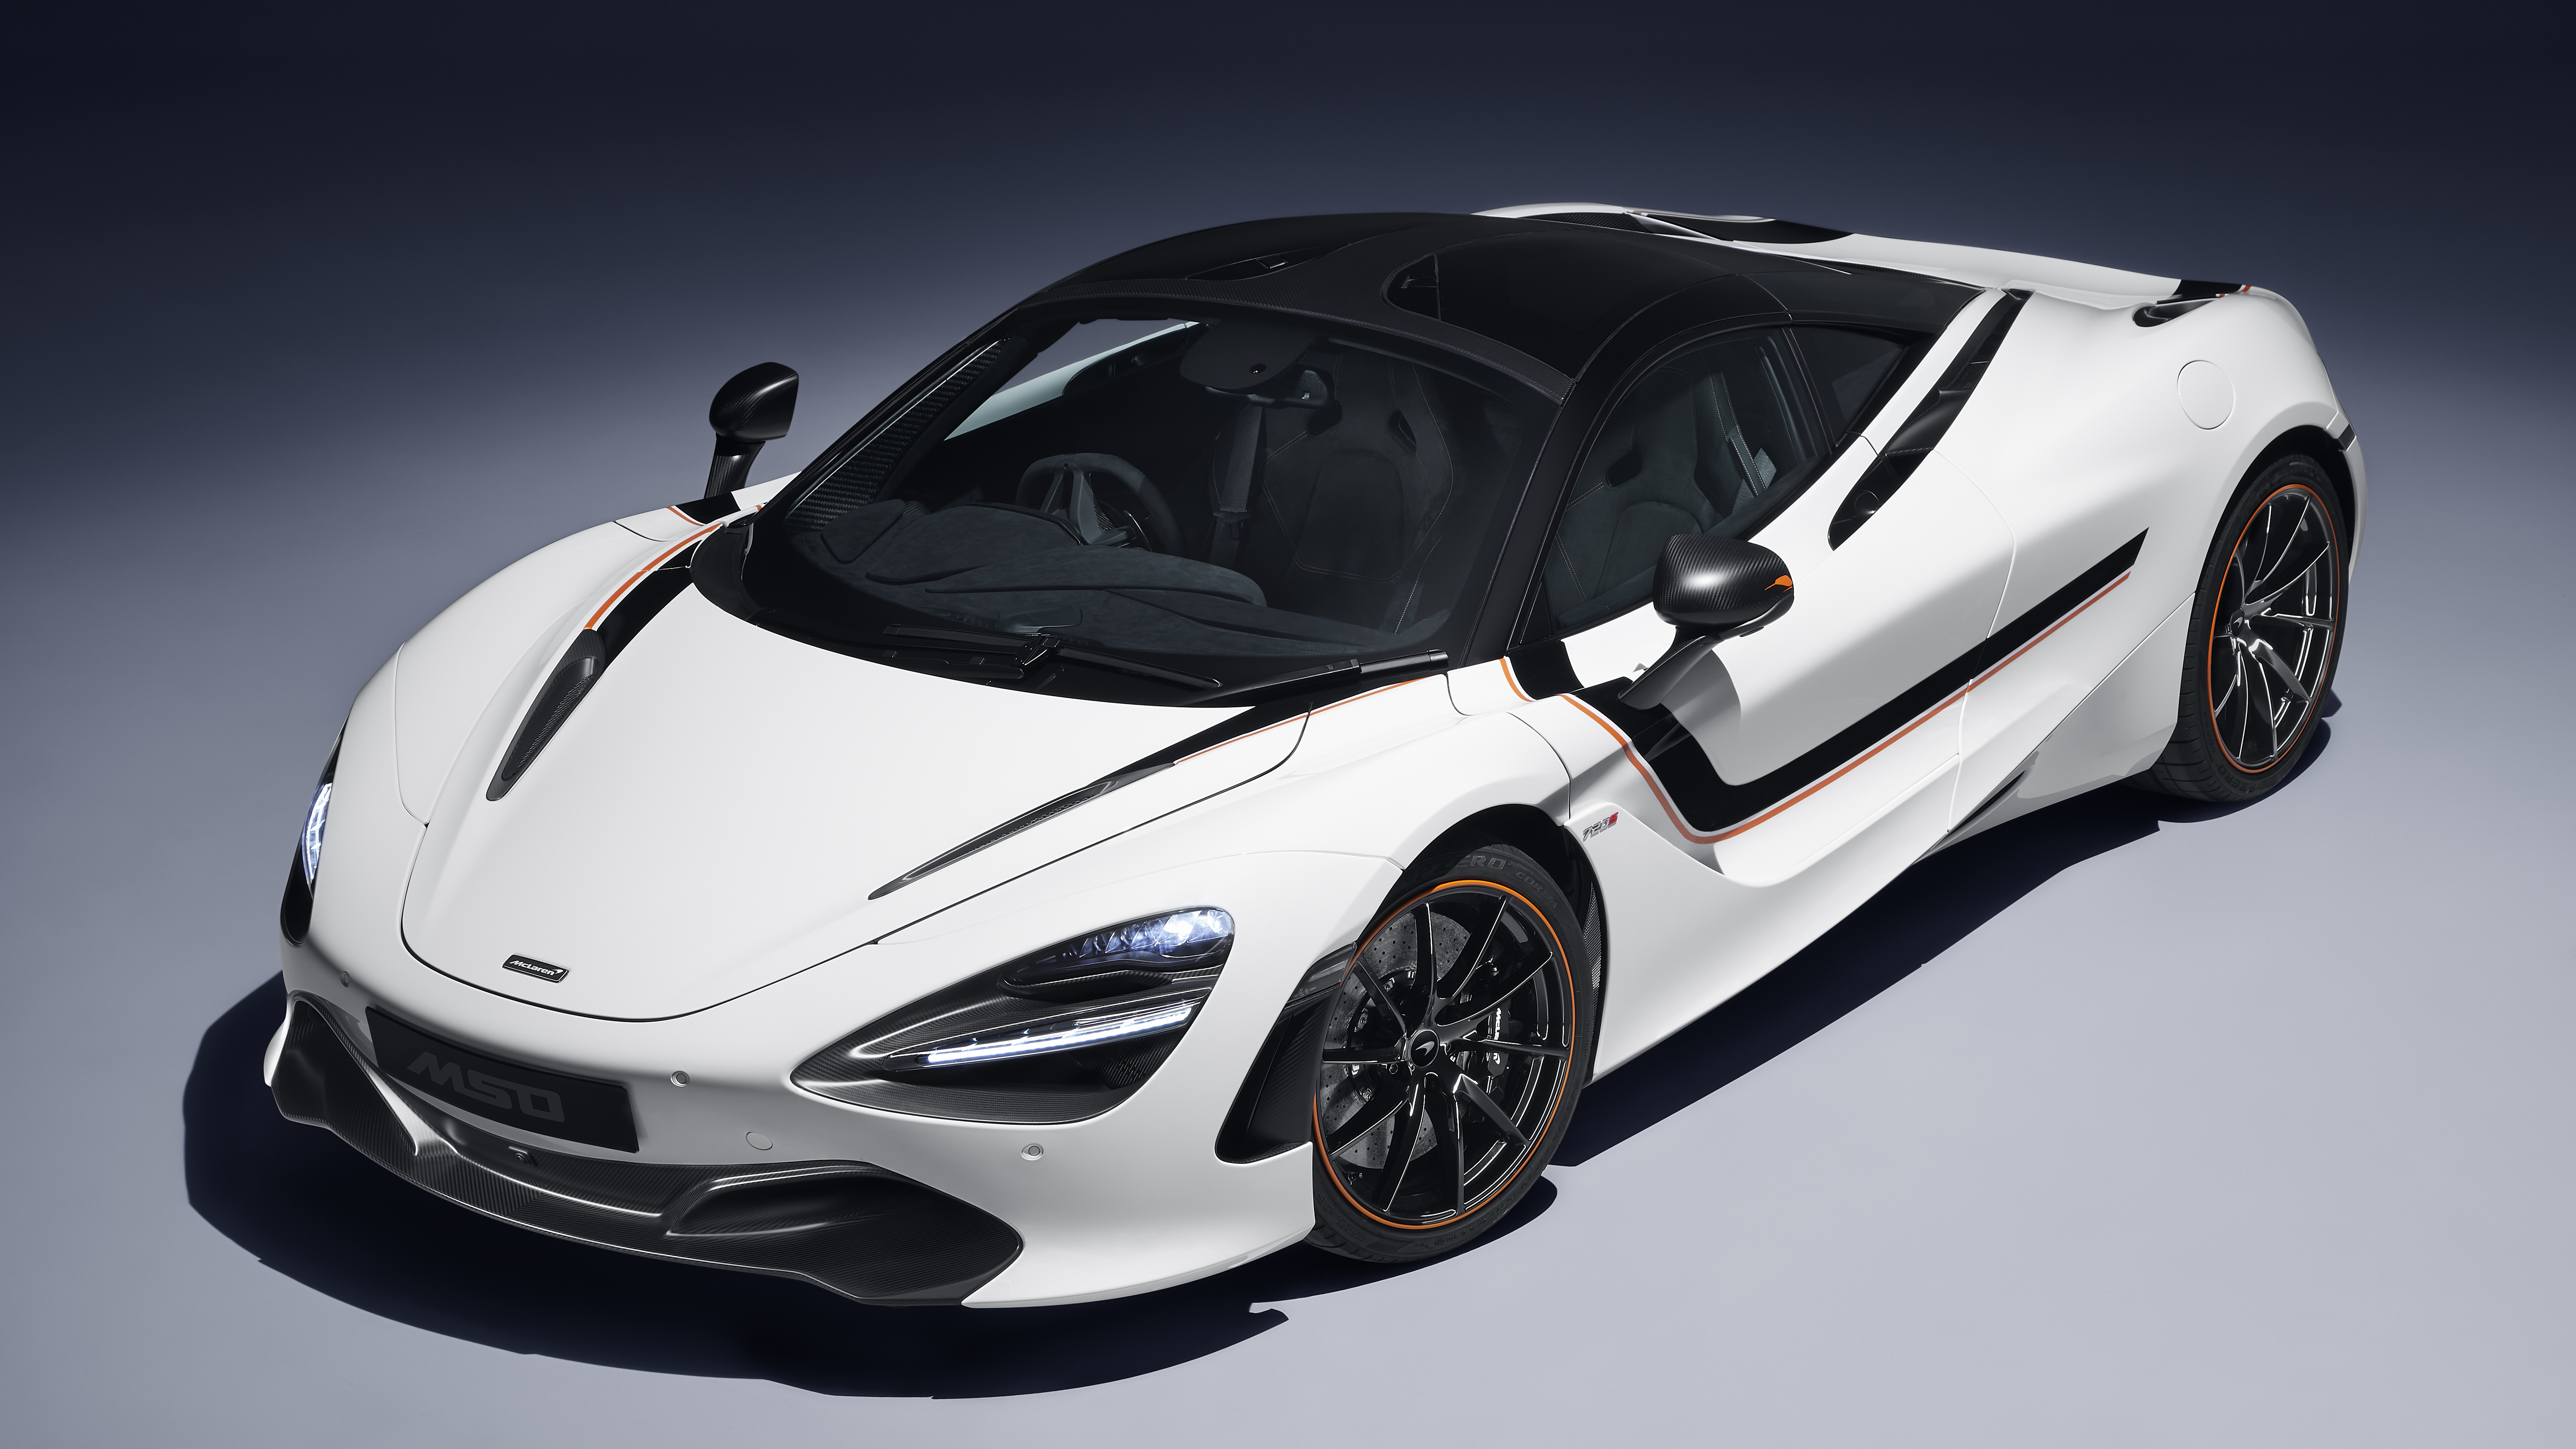 5 Car Themed Wallpapers For Ipad: McLaren 720S Track Theme 2018 5K 3 Wallpaper